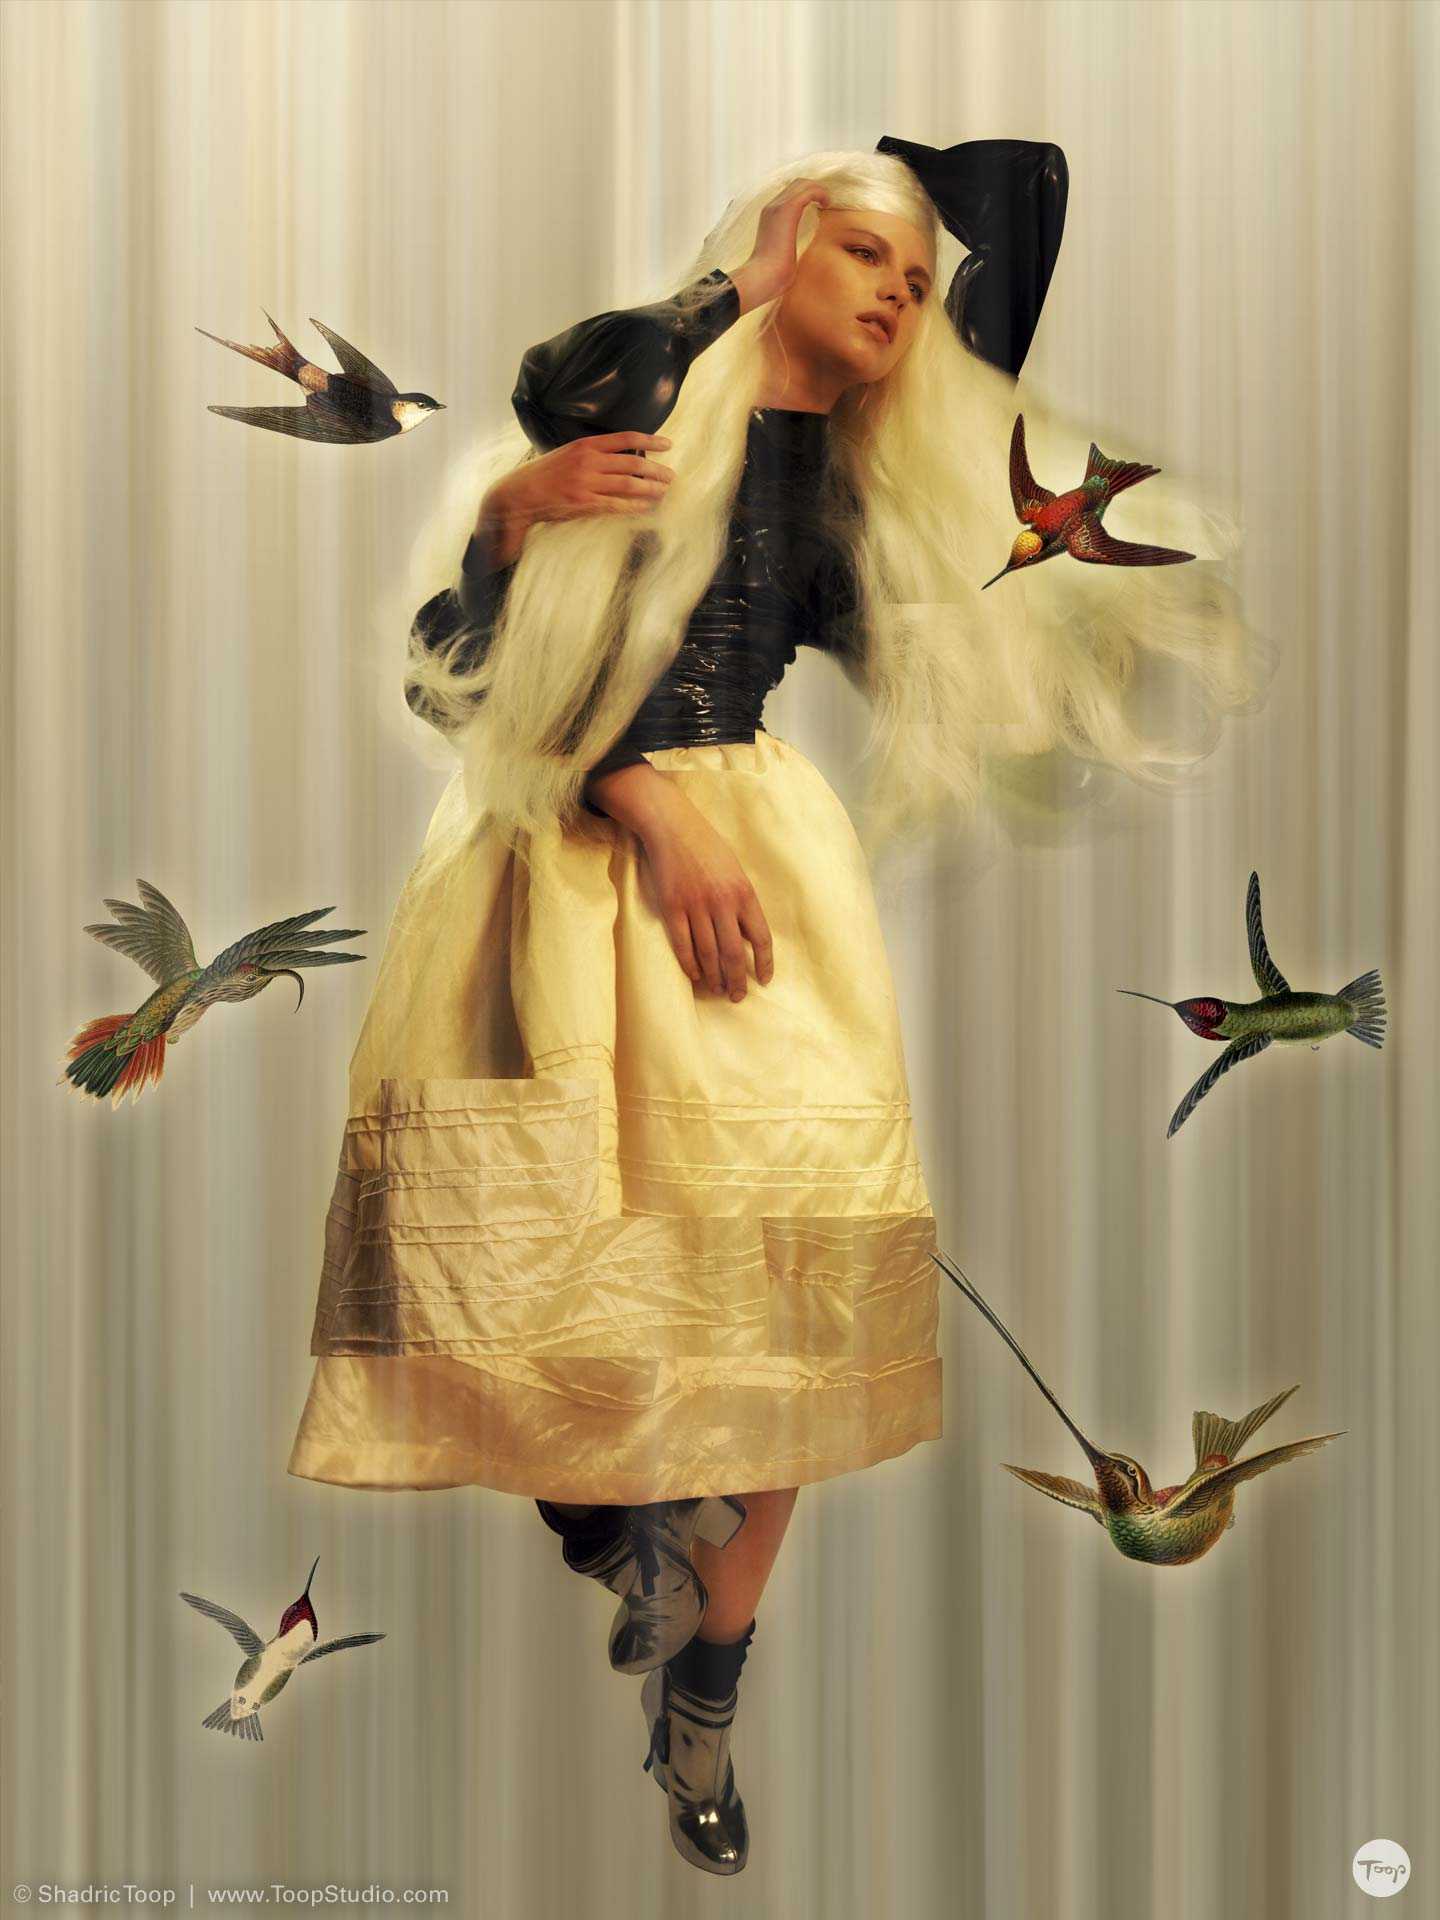 Stylized photographic collage of a model with long hair against an abstract moving background surrounded by exotic birds - work by Art Director Illustrator Shadric Toop - Brighton